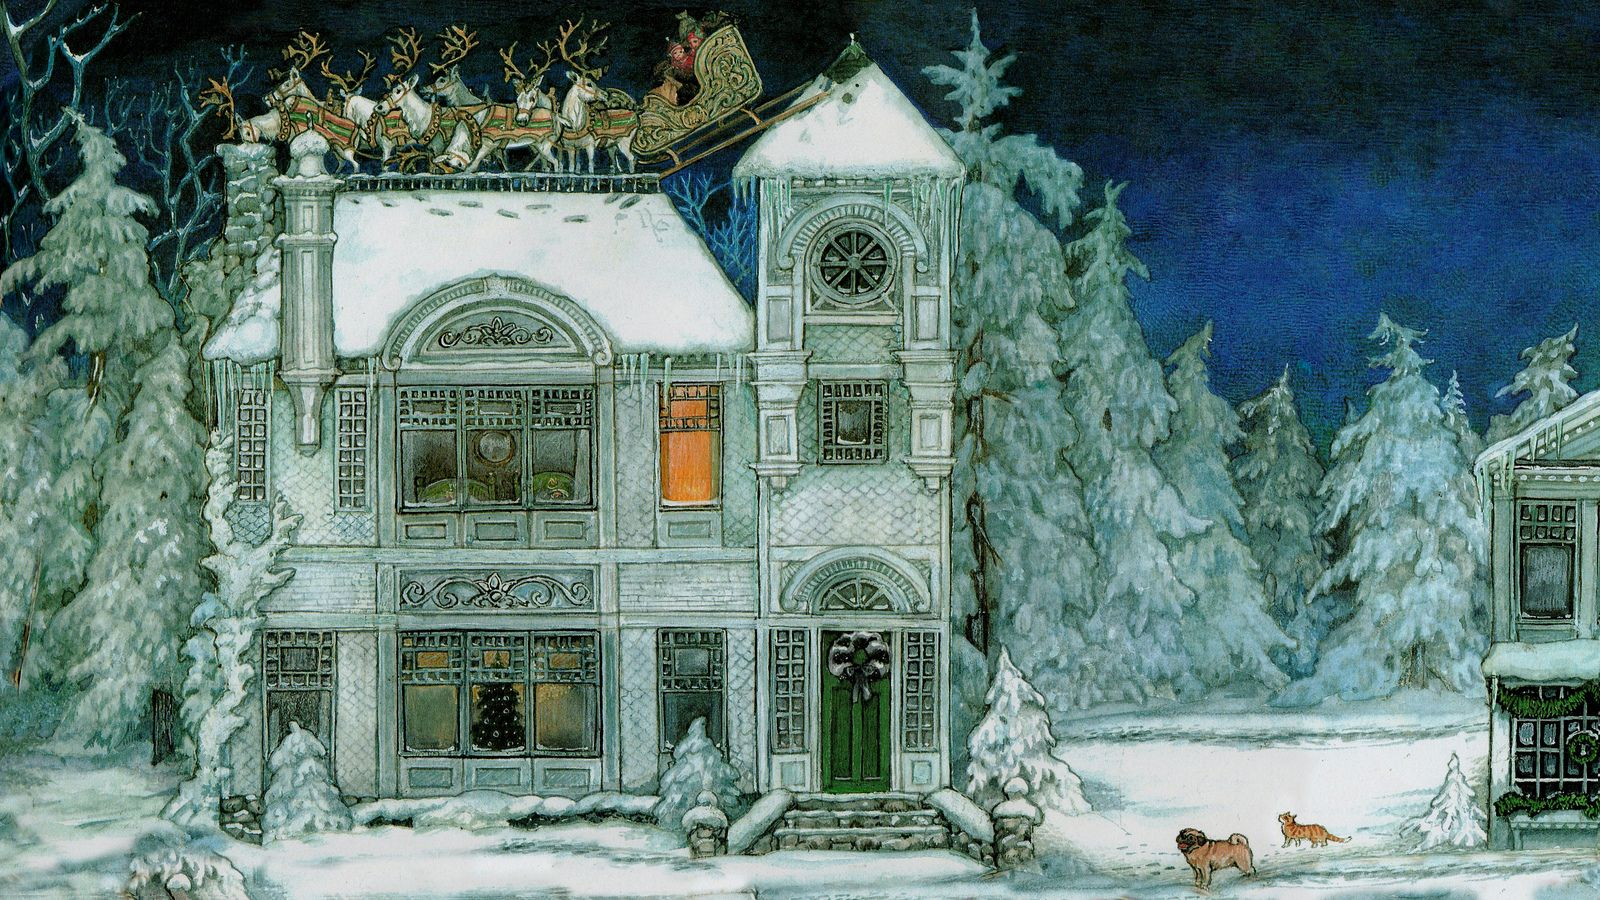 Jan Brett 'The Night Before Christmas' 1998 (formatted for computer wallpaper 1920x1080) | by Plum leaves